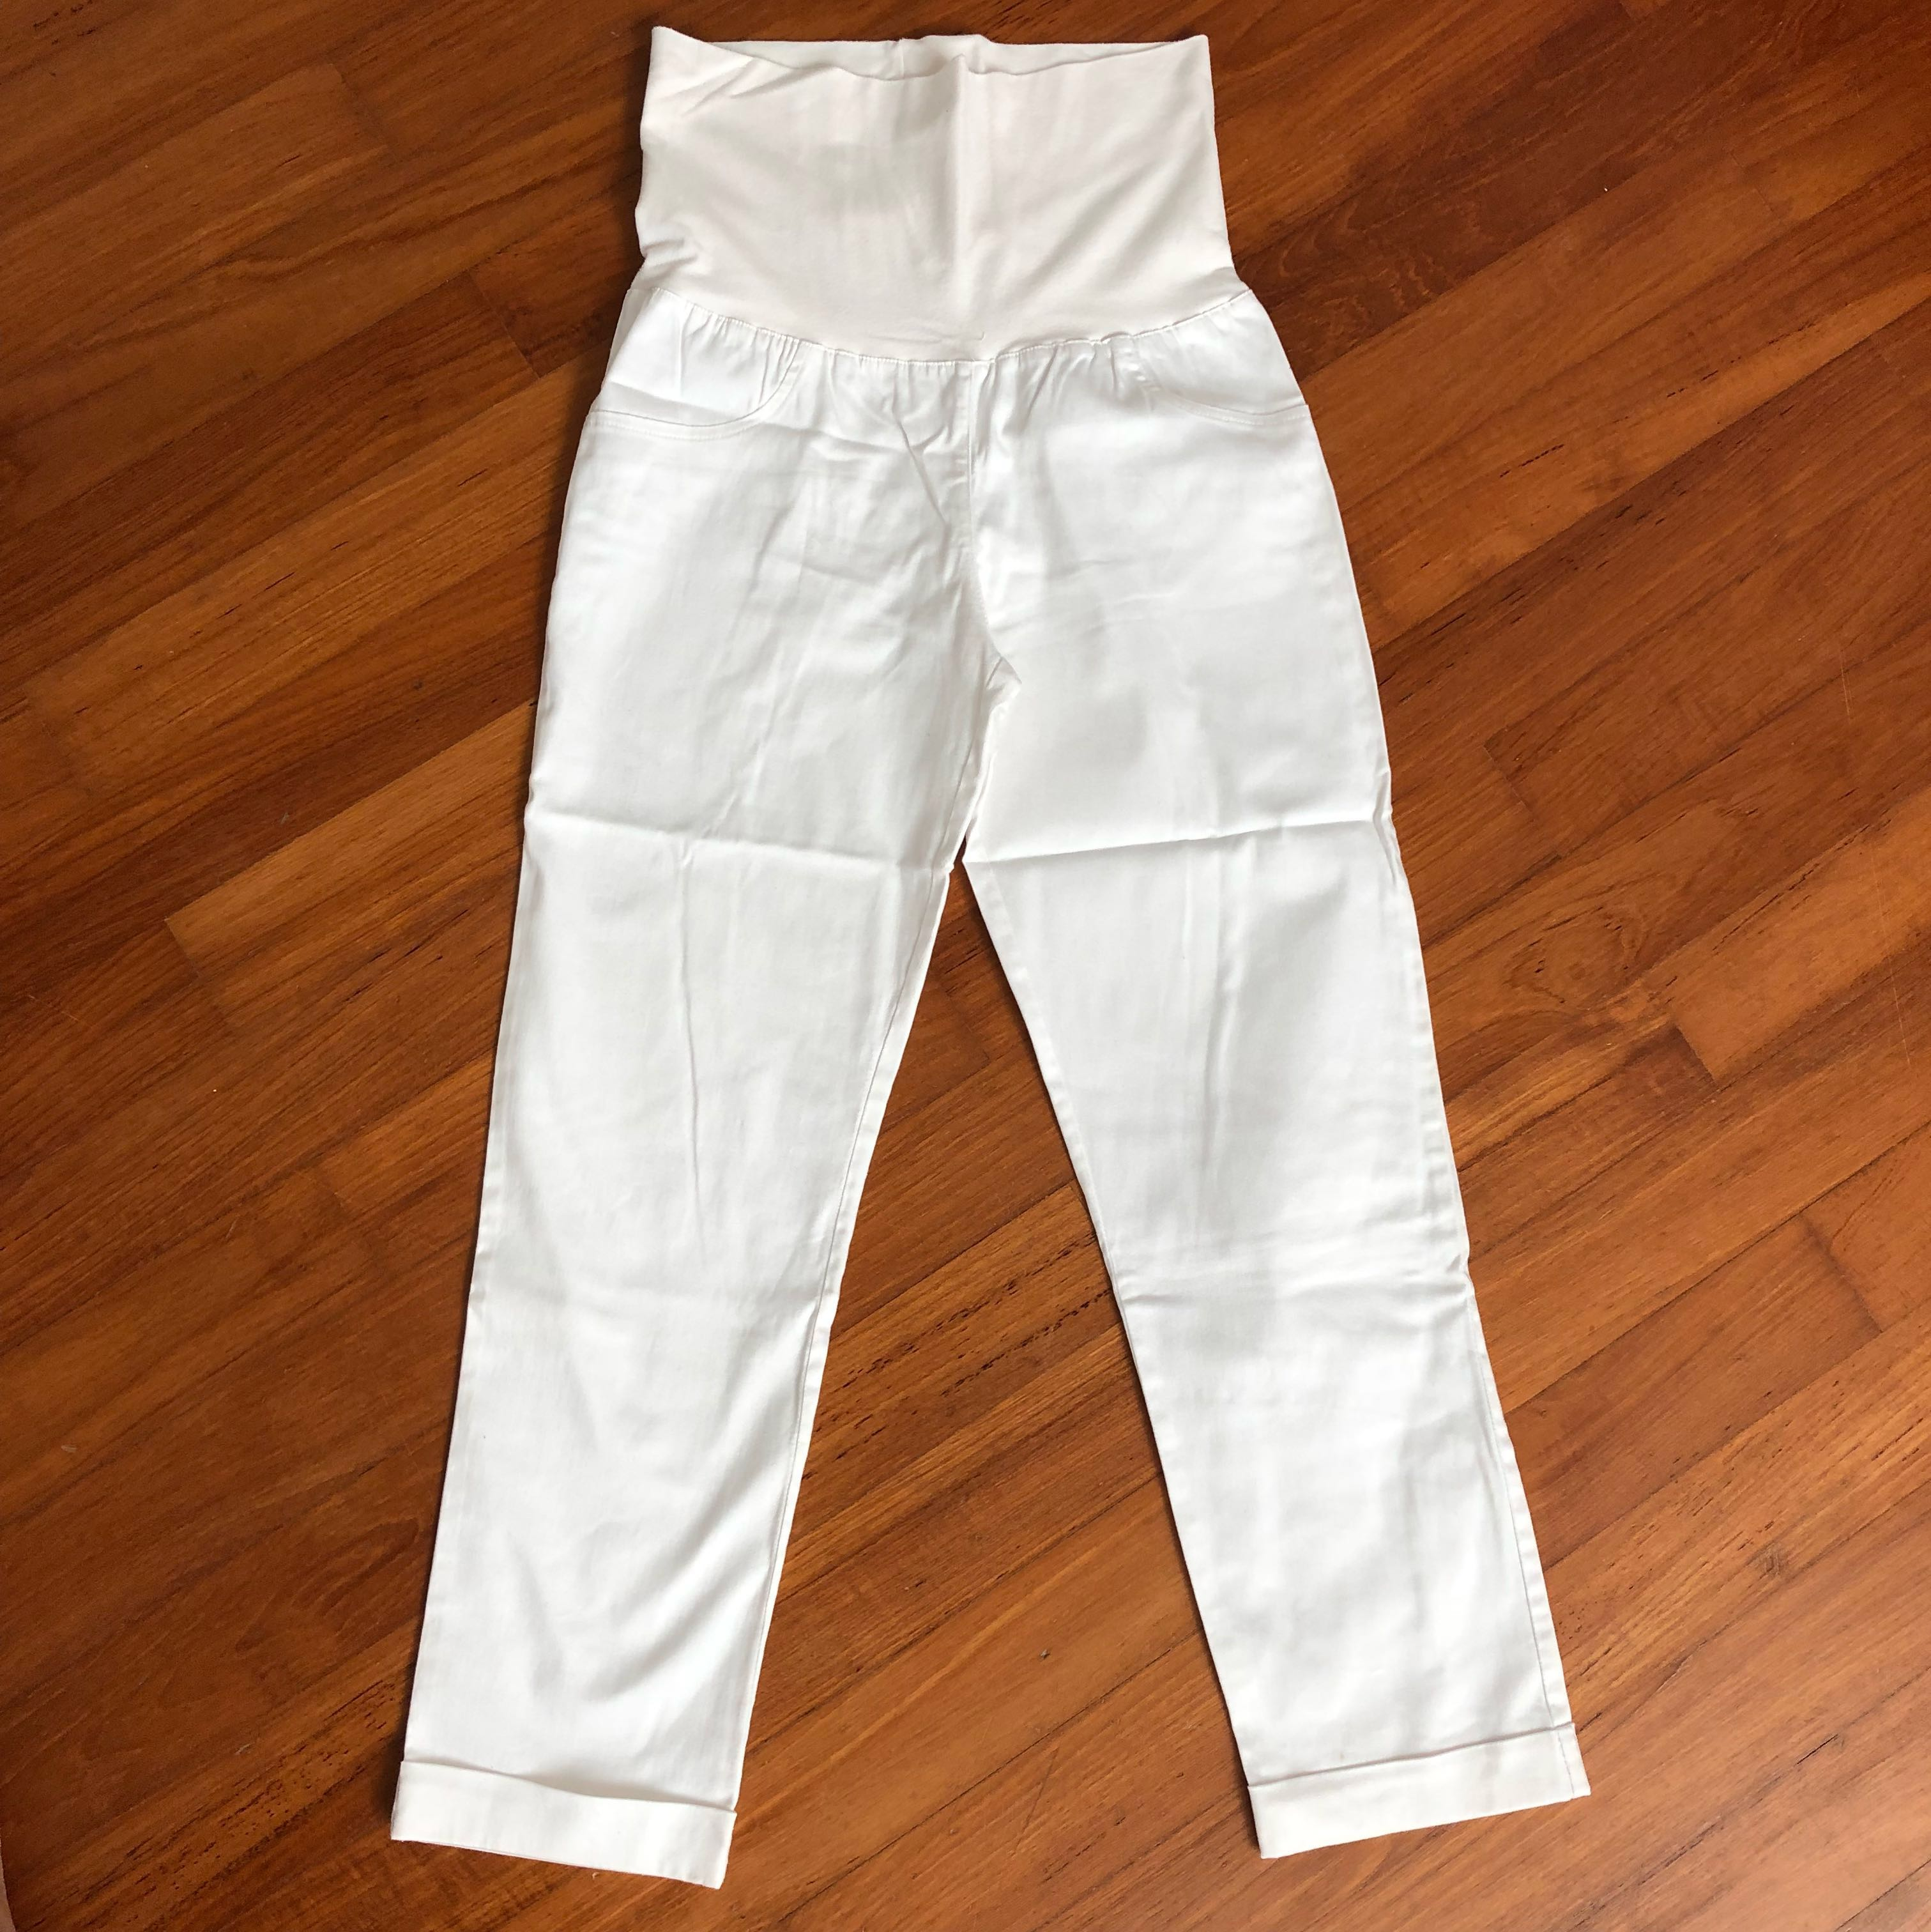 9a25bd1f45a0c1 White Maternity Pants, Babies & Kids, Maternity on Carousell